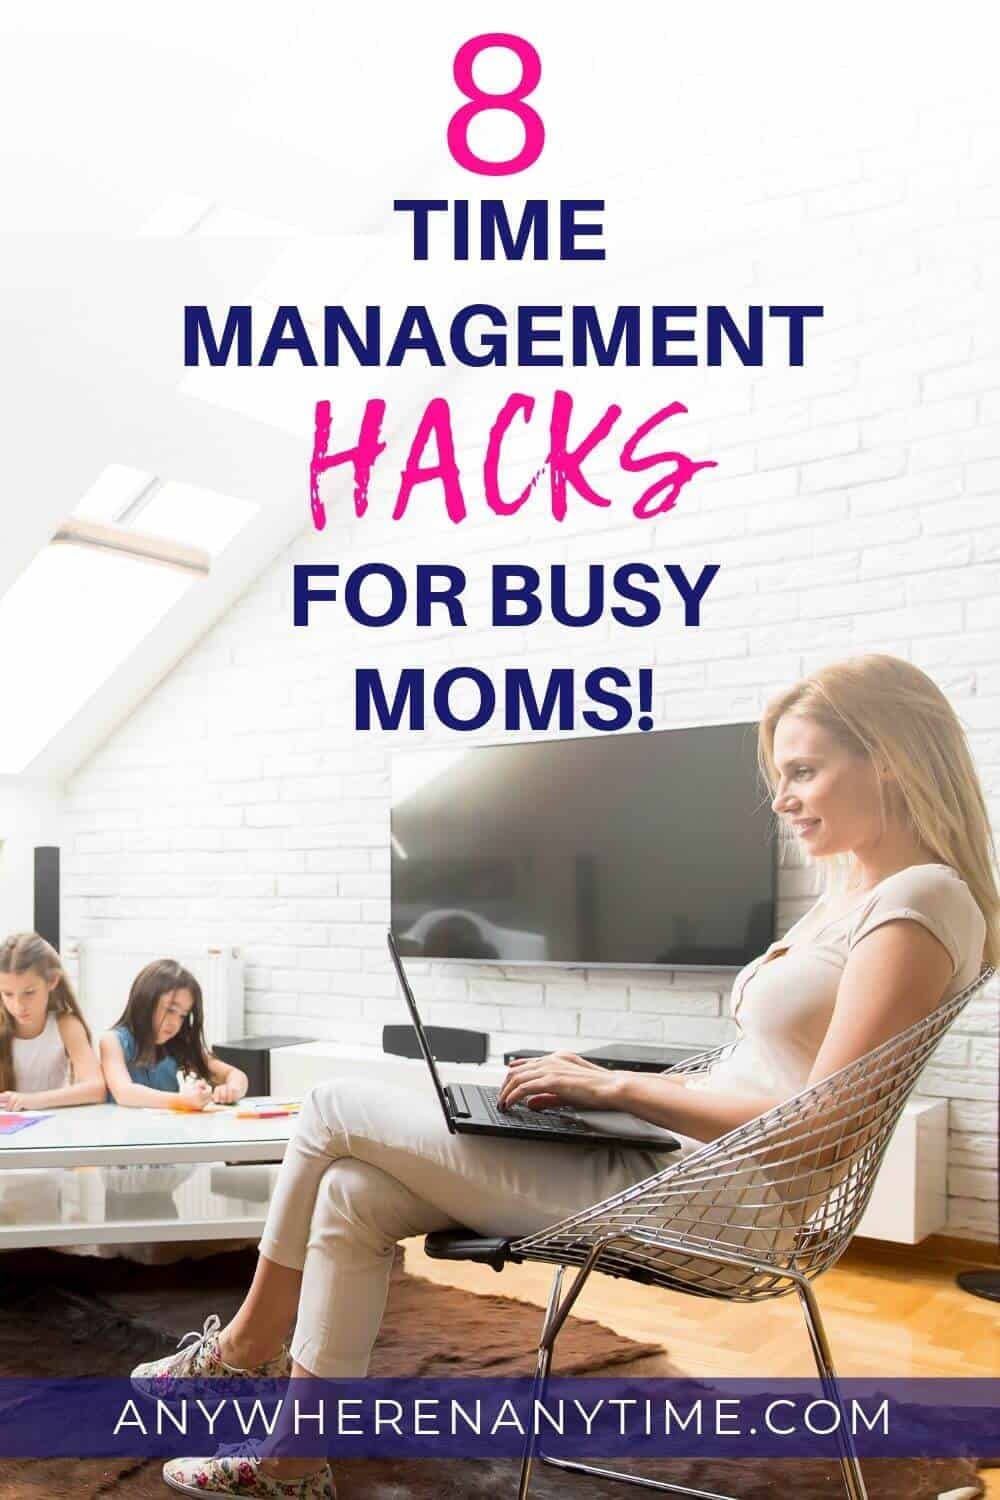 ime management hacks for the work-at-home and stay-at-home mom. Whether you have young children or otherwise running a busy household, these 5 time management hacks are life savers! #timemanagementtips